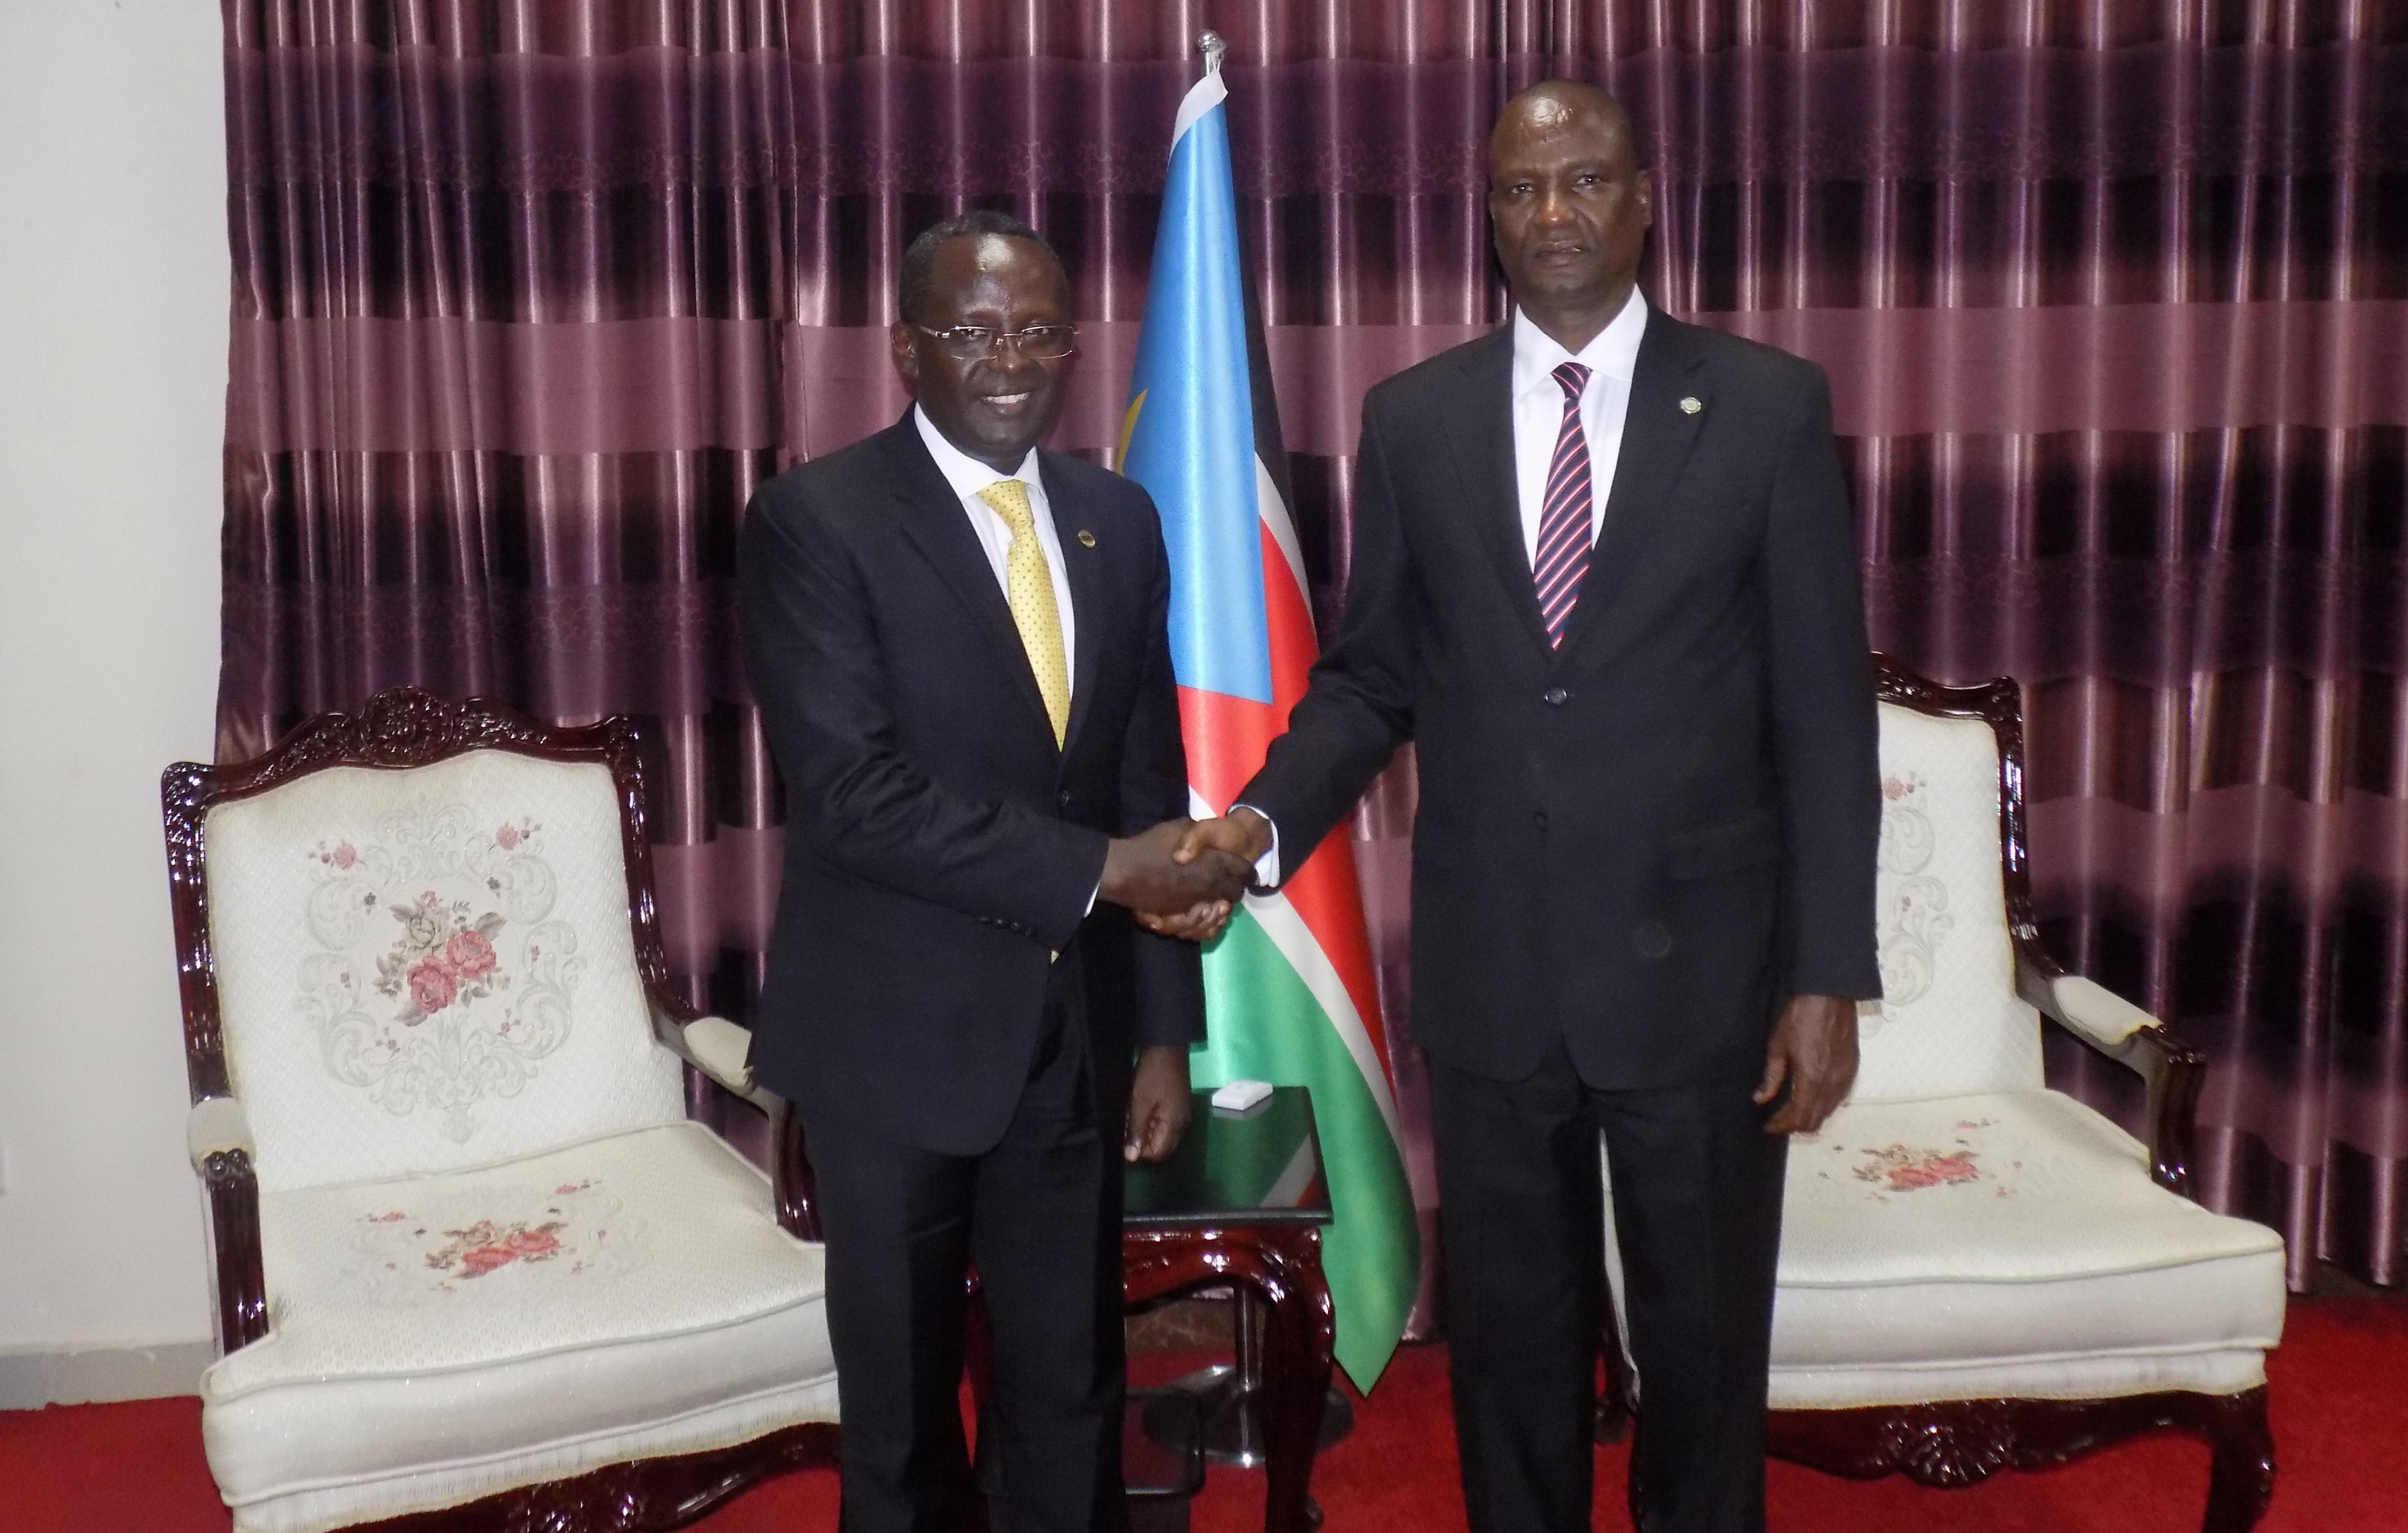 1st Vice President of the Republic of South Sudan, Lt. Gen Taban DEng Gai shakes hands with the EALA Speaker, Rt Hon Martin Ngoga at the Vice President's Office earlier today